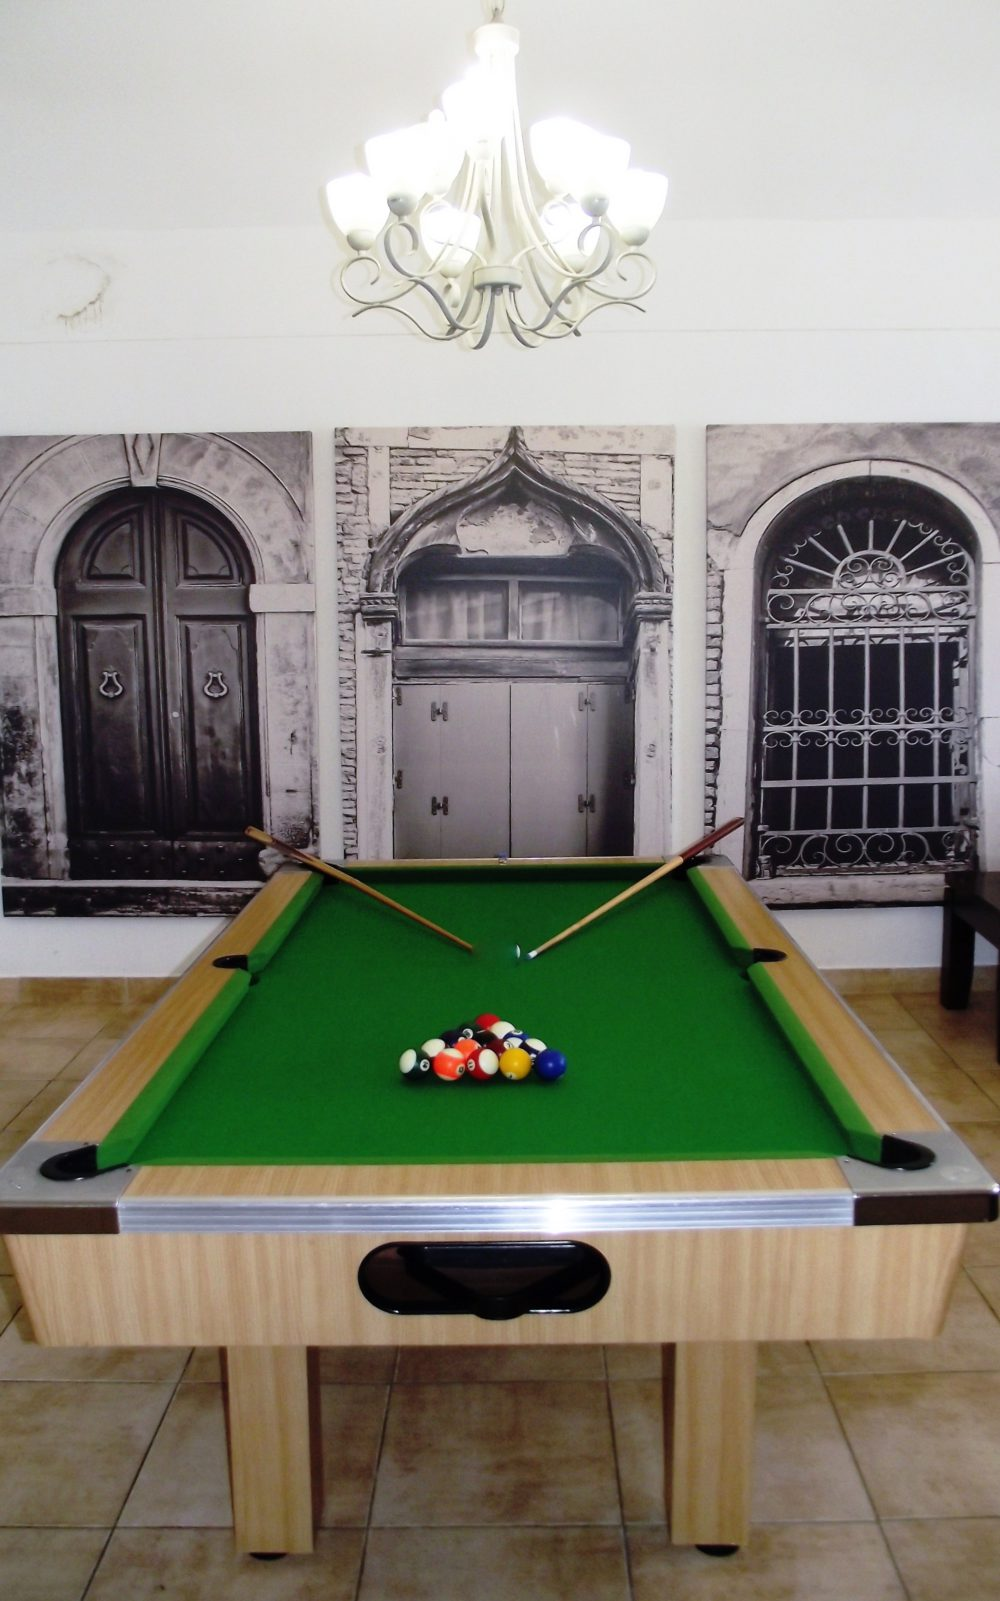 SANTORNI H – POOL TABLE